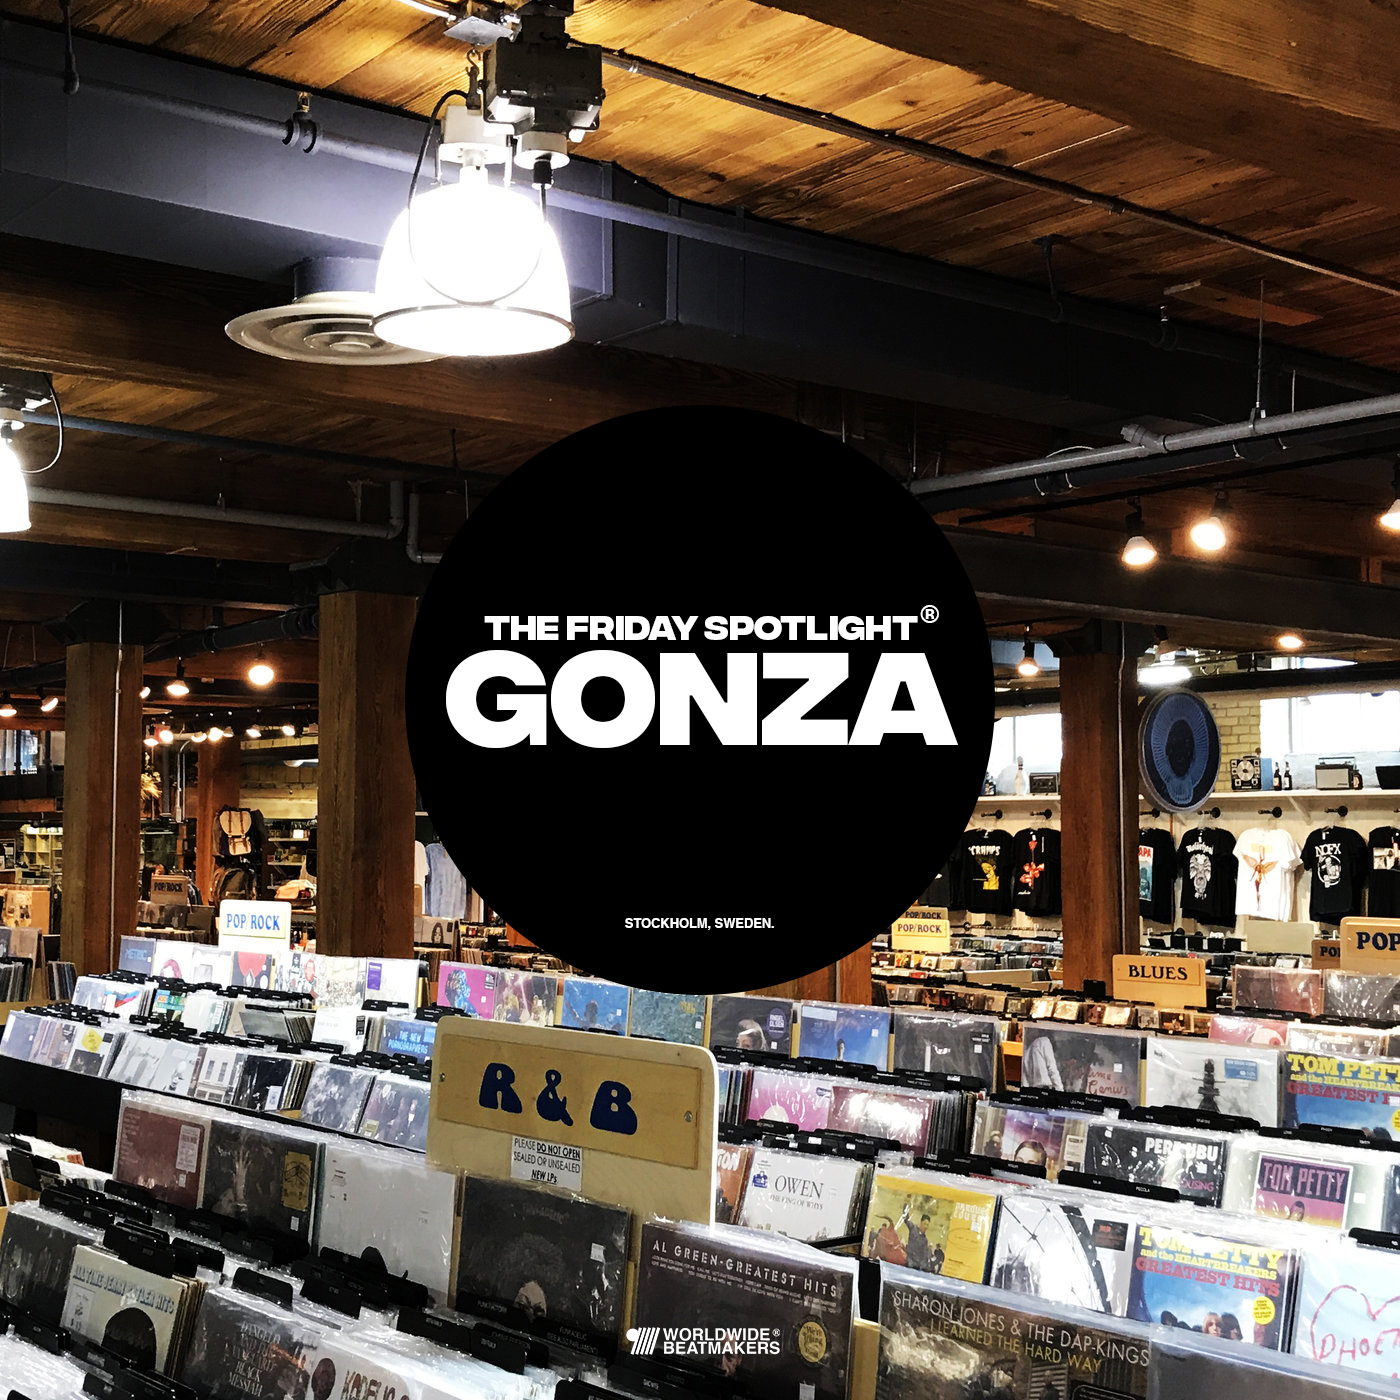 The Friday Spotlight® - Gonza